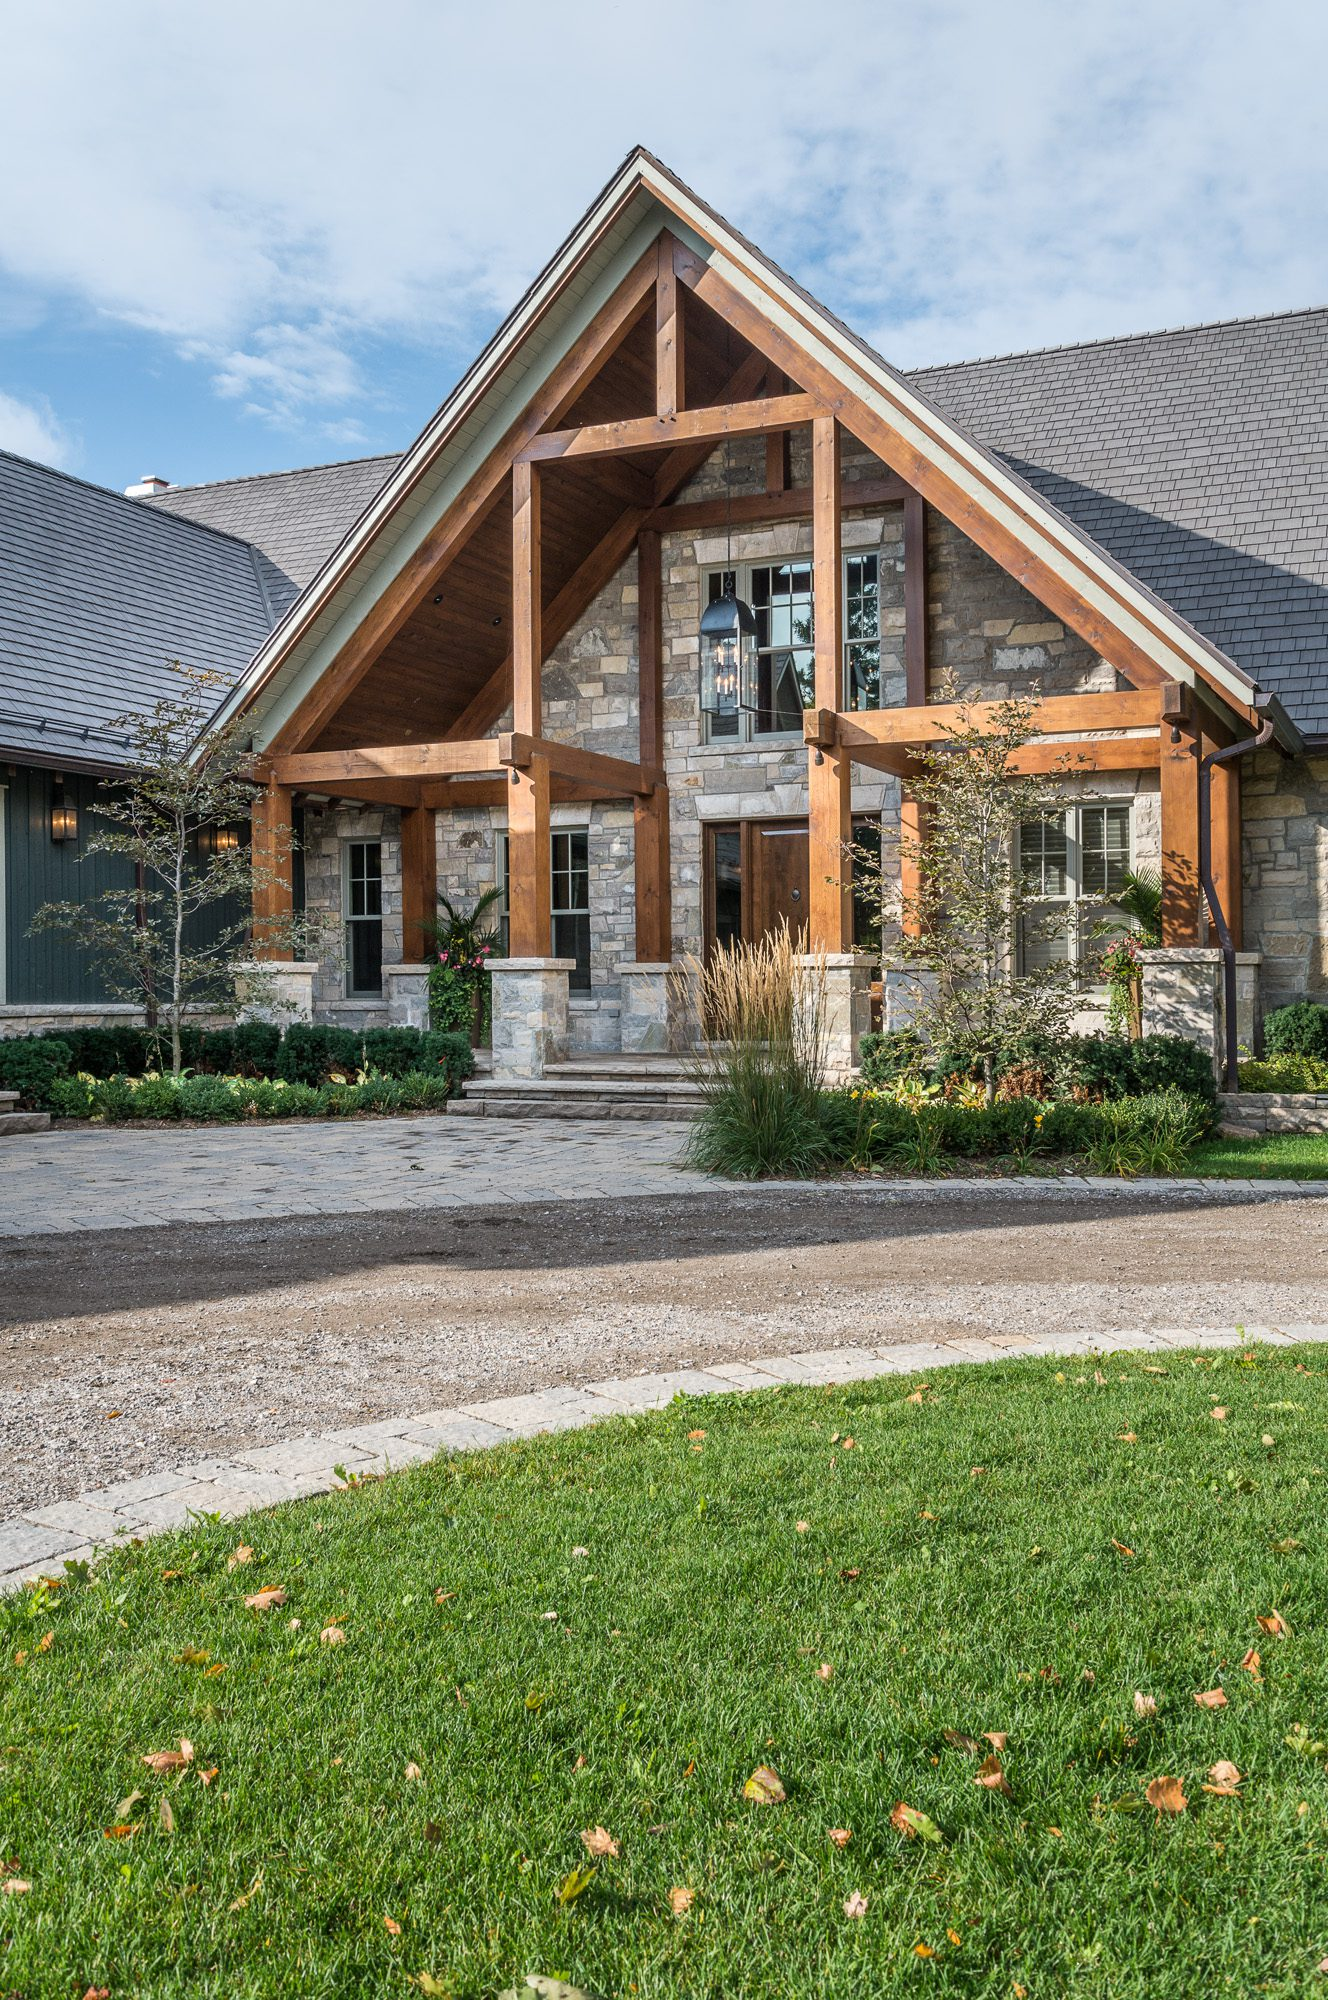 Normerica Timber Frame, Exterior, Country House, Porch, Front View